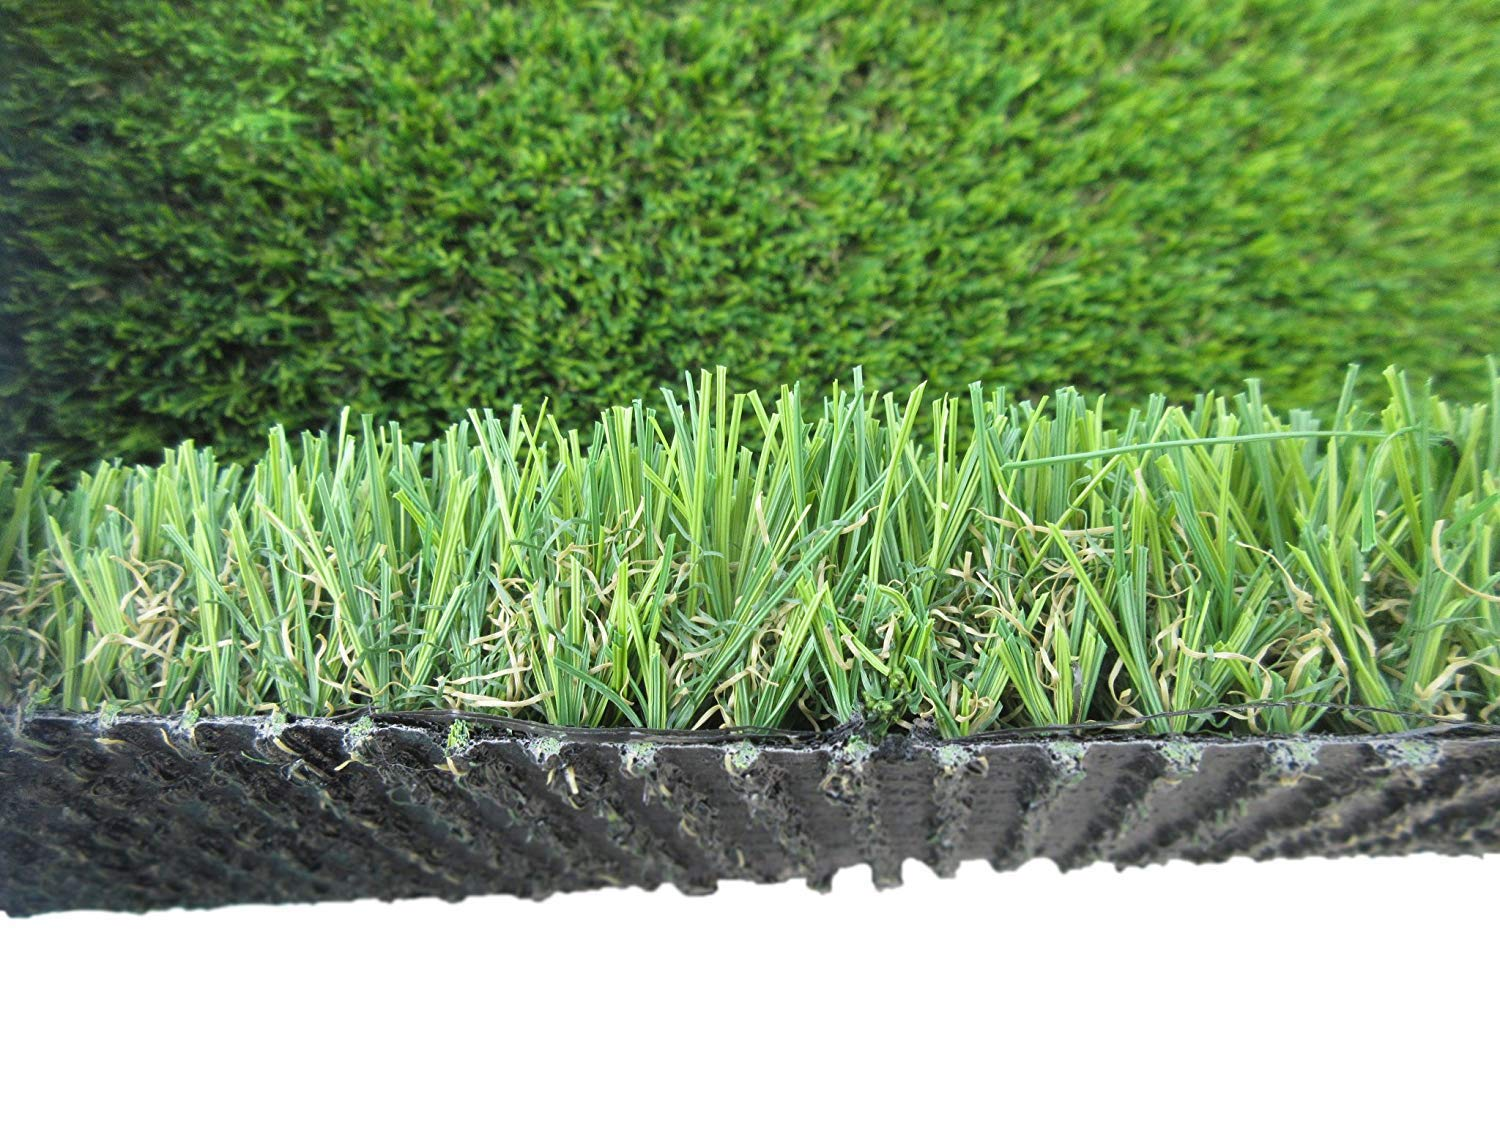 PZG Commerical Artificial Grass Patch w/ Drainage Holes & Rubber Backing   Extra-Heavy & Durable Turf   Lead-Free Fake Grass for Dogs or Outdoor Decor   Total Wt. - 83 oz & Face Wt. 55 oz   12' x 6'